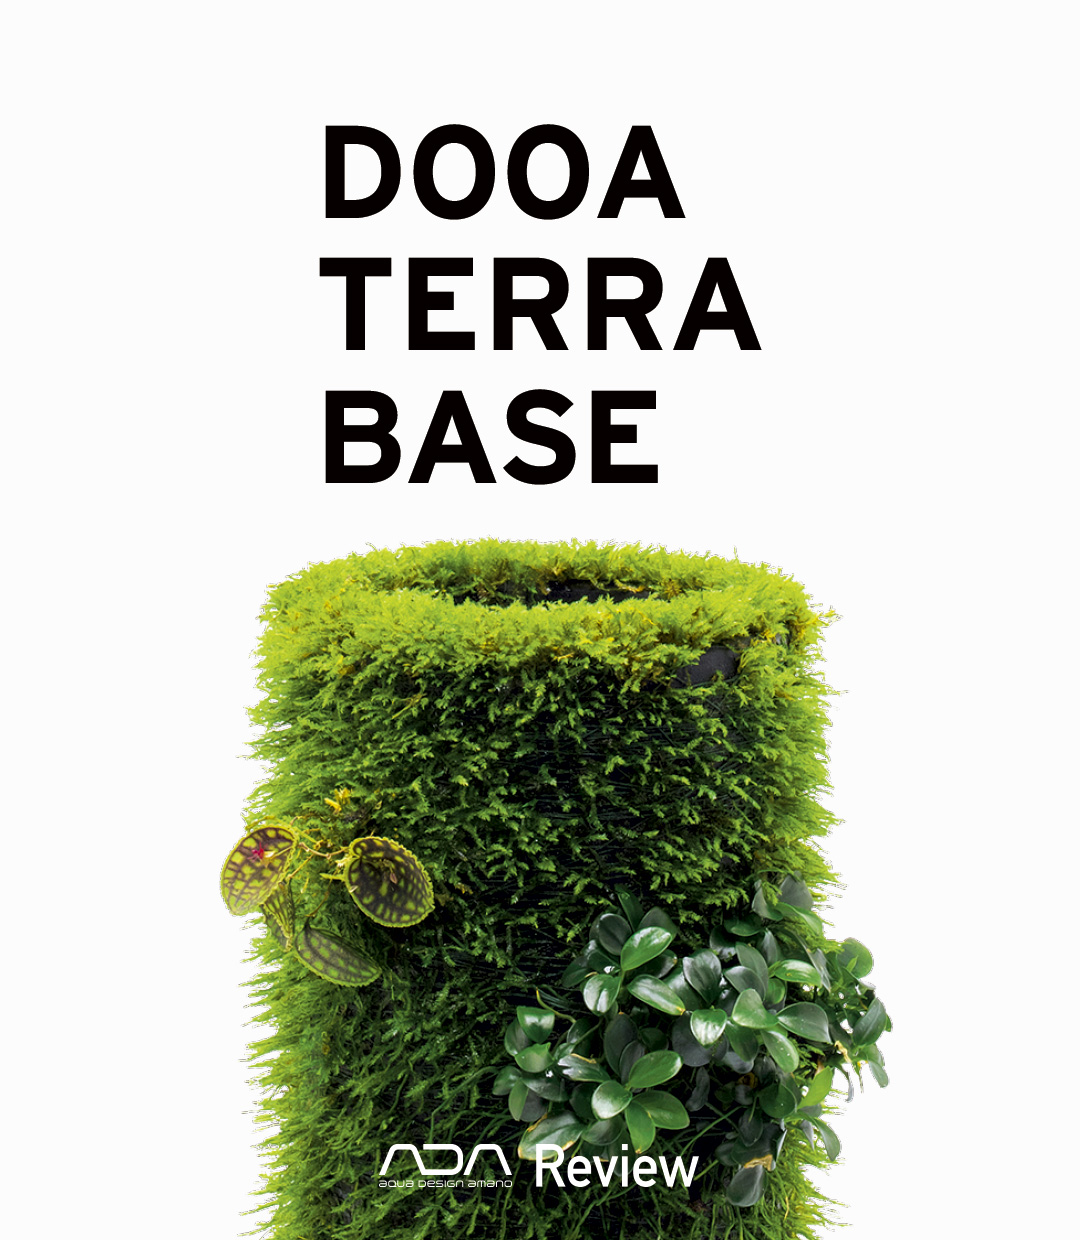 DOOA TERRA BASE 'Enjoy the natural appearance of plants with a sense of eternity created by moss'